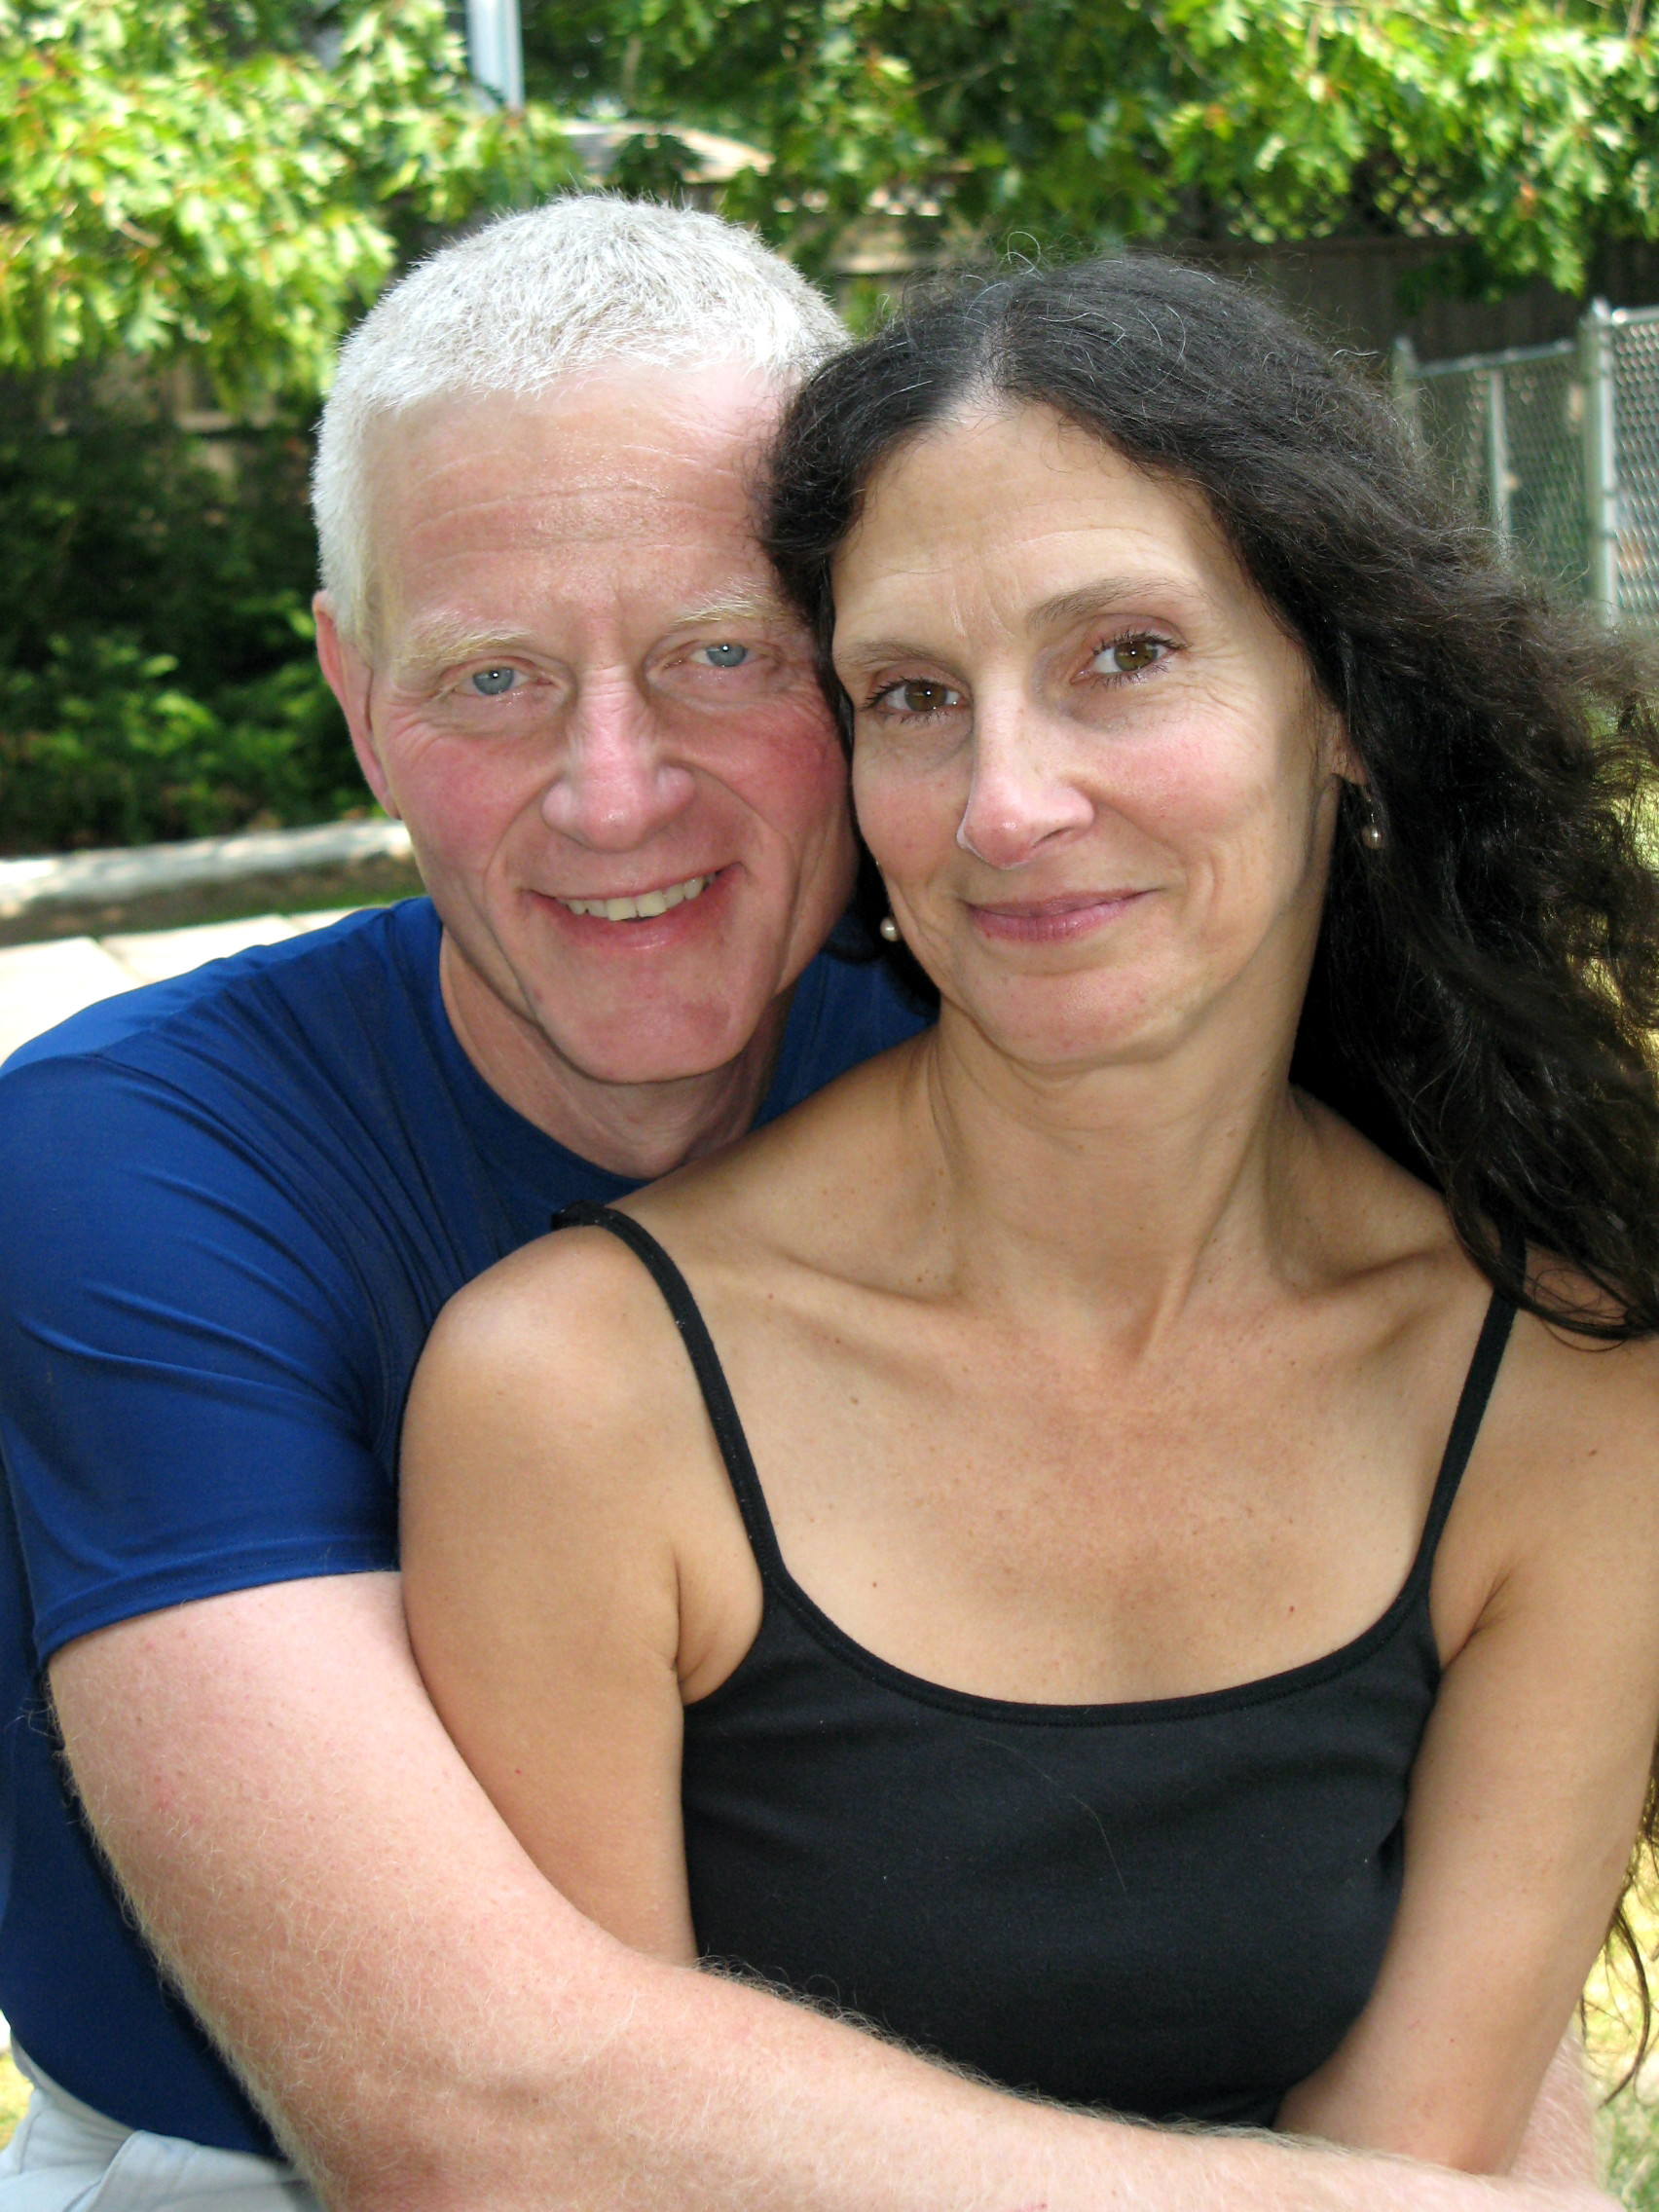 Jeanne Melanson and Jon Myrmel